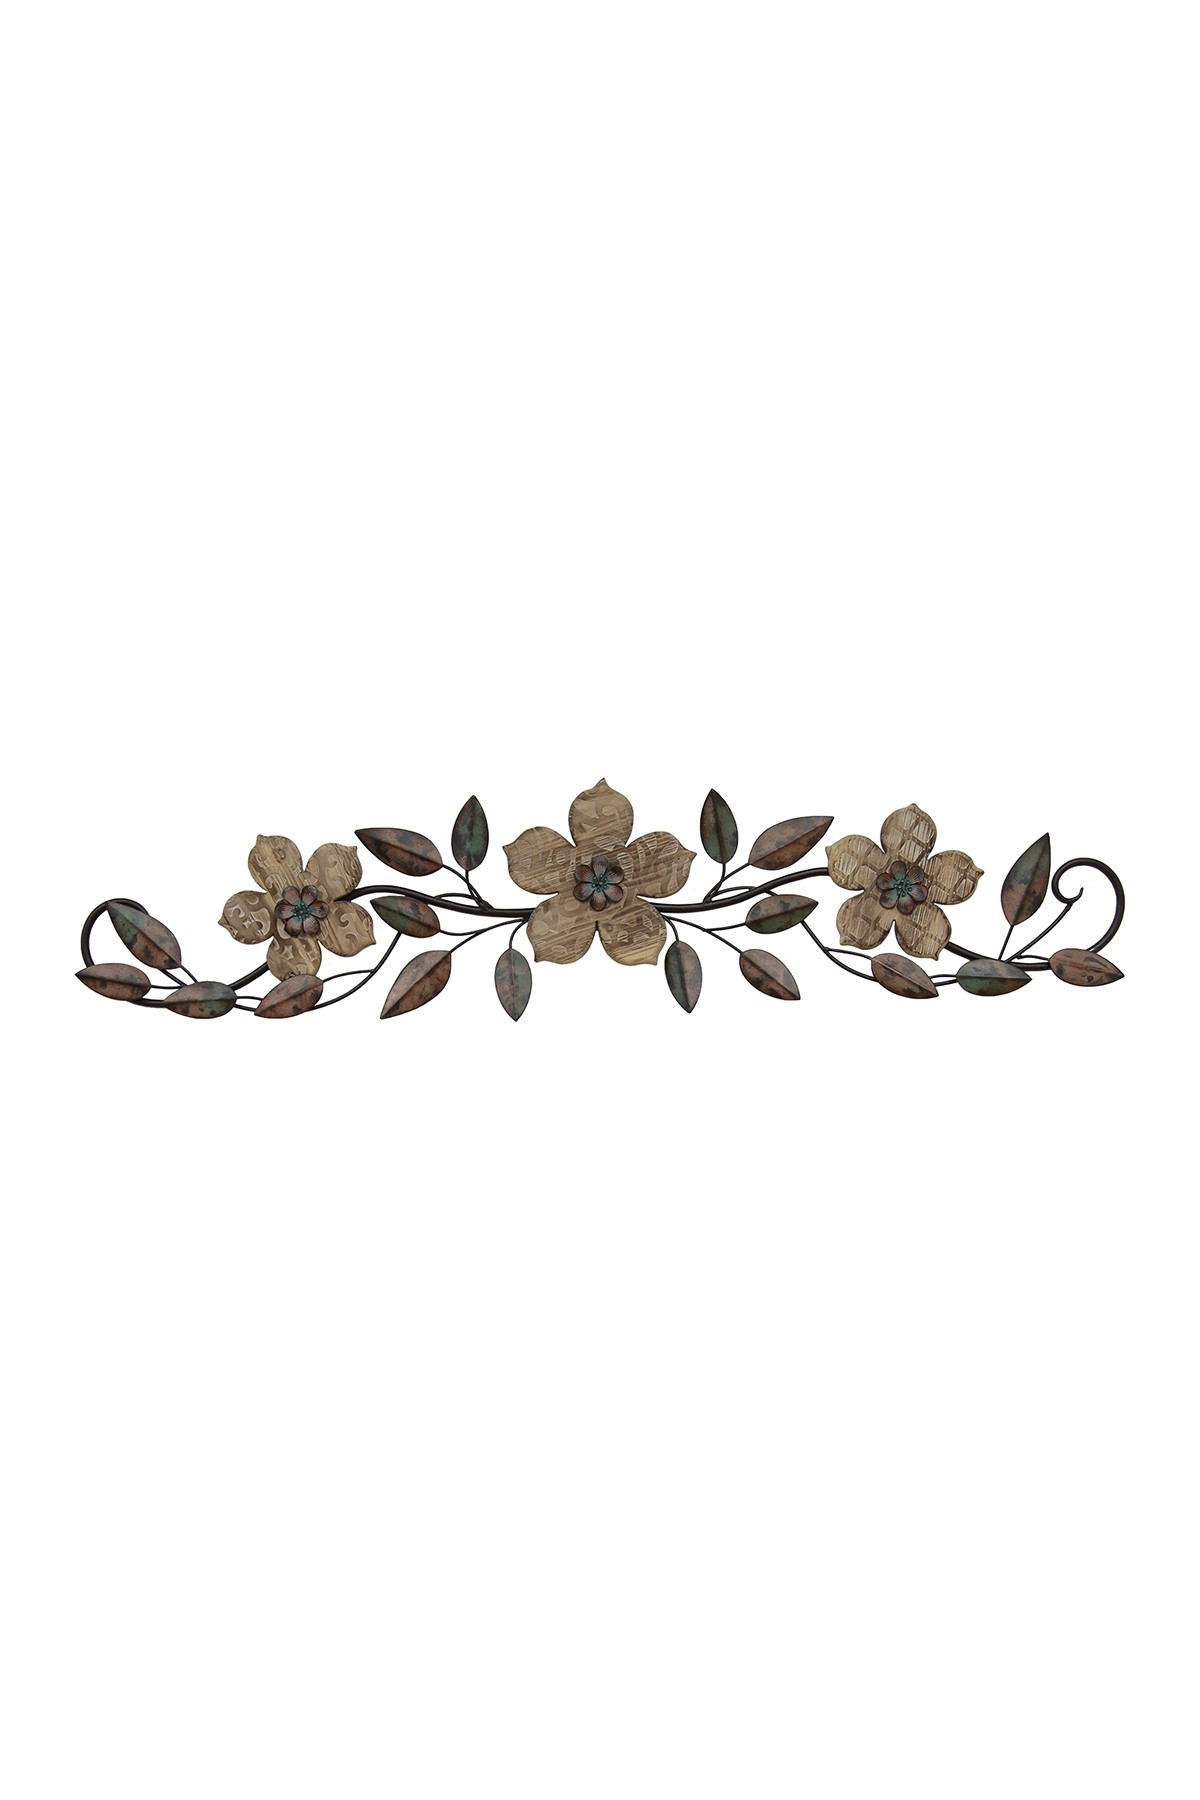 Floral Patterned Wood Over The Door Multicolor Wall Decor Inside Favorite Floral Patterned Over The Door Wall Decor (View 10 of 20)